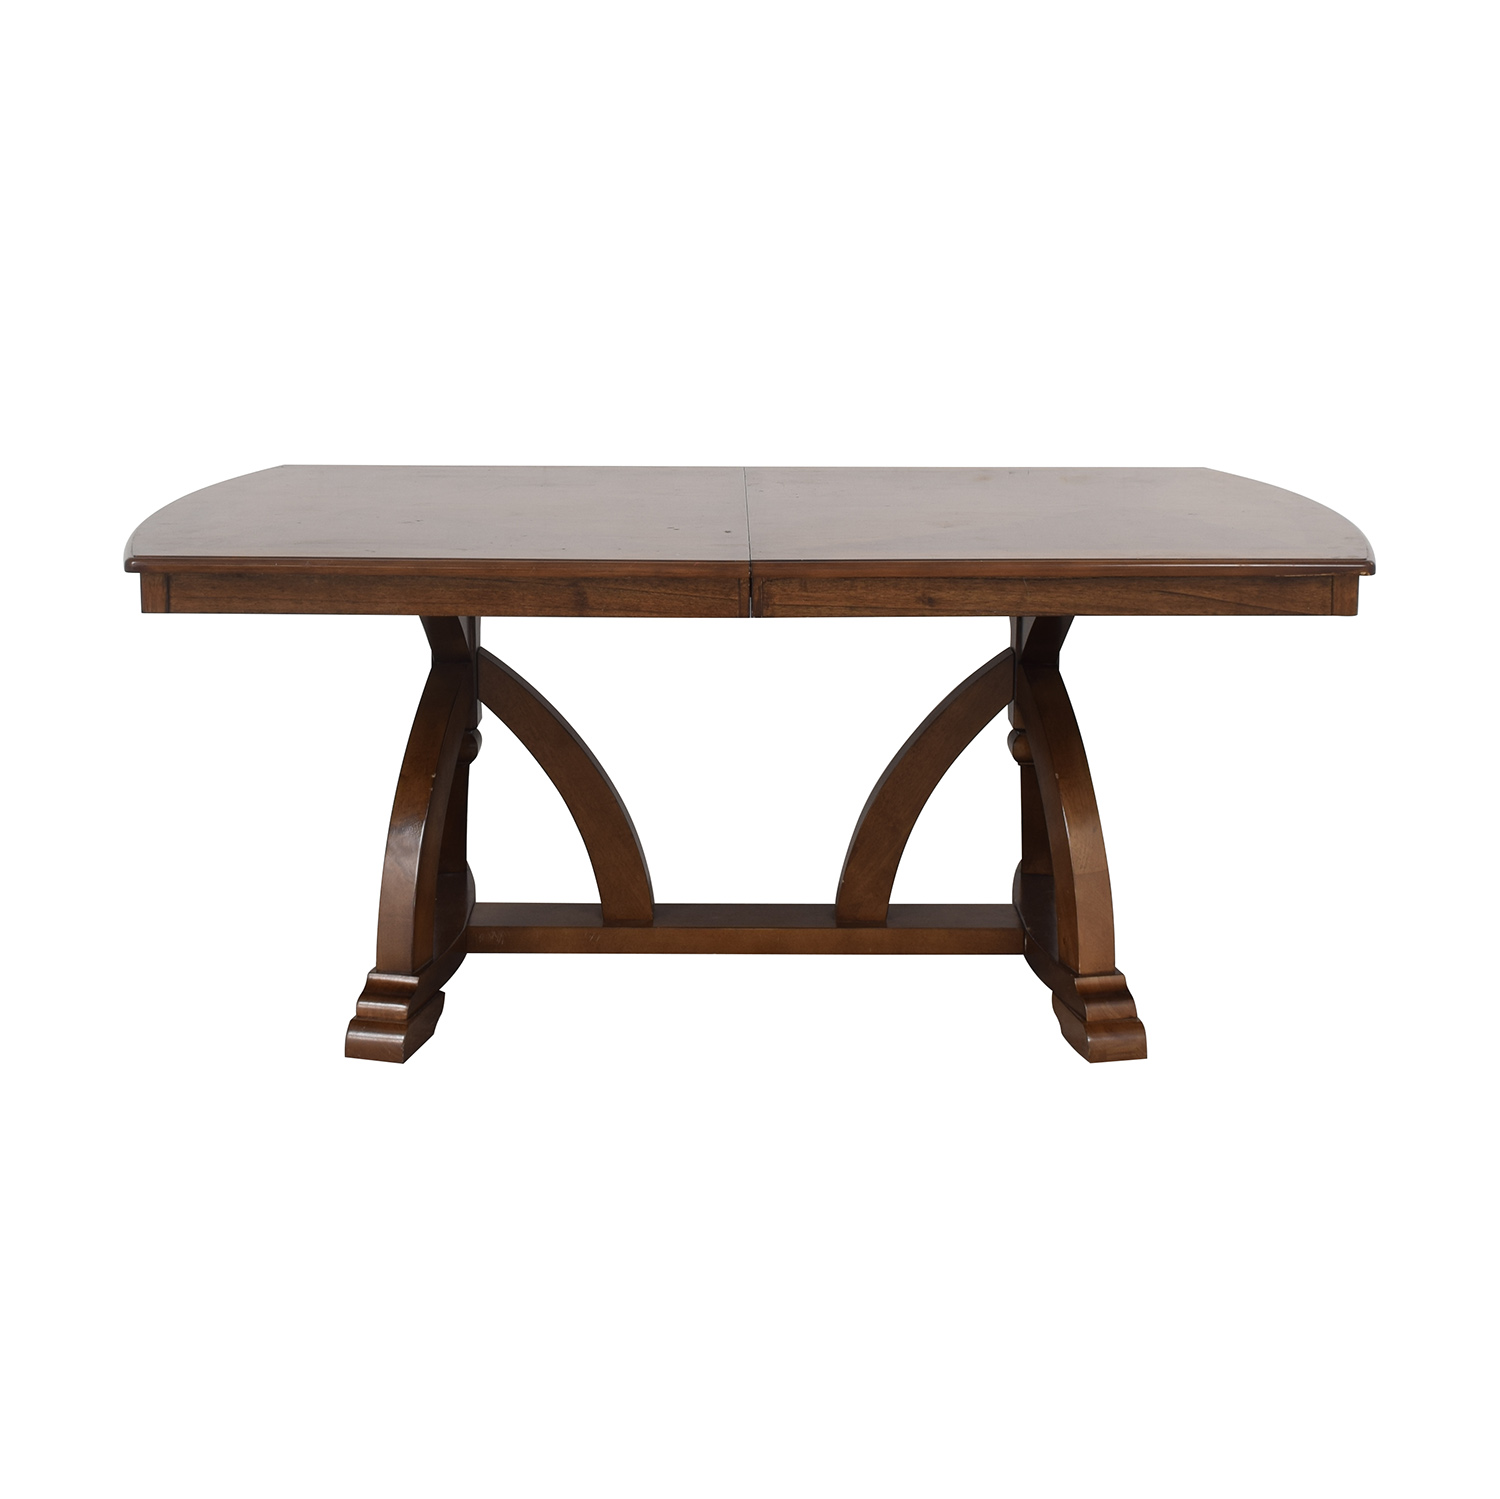 buy Raymour & Flanigan Wood Expandable Dining Table Raymour & Flanigan Tables